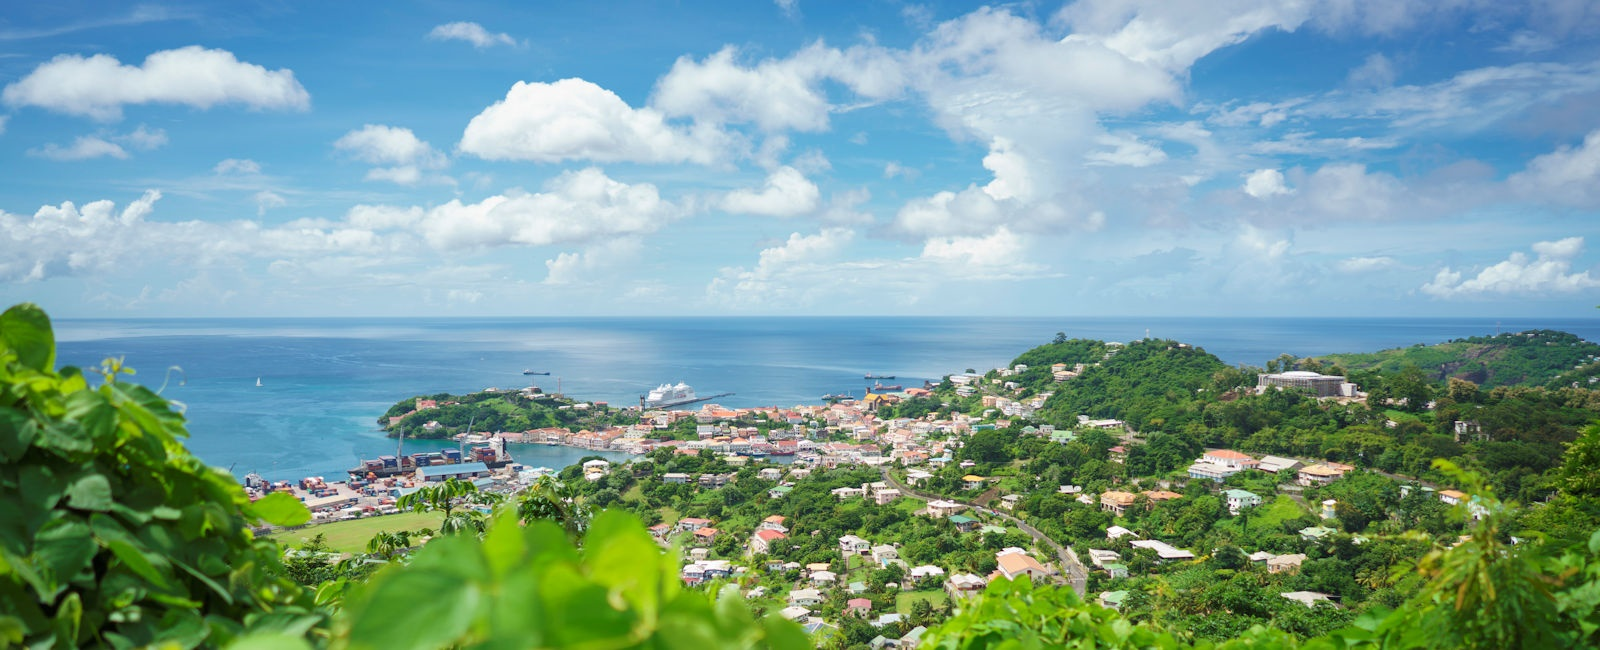 st george's holidays, Grenada